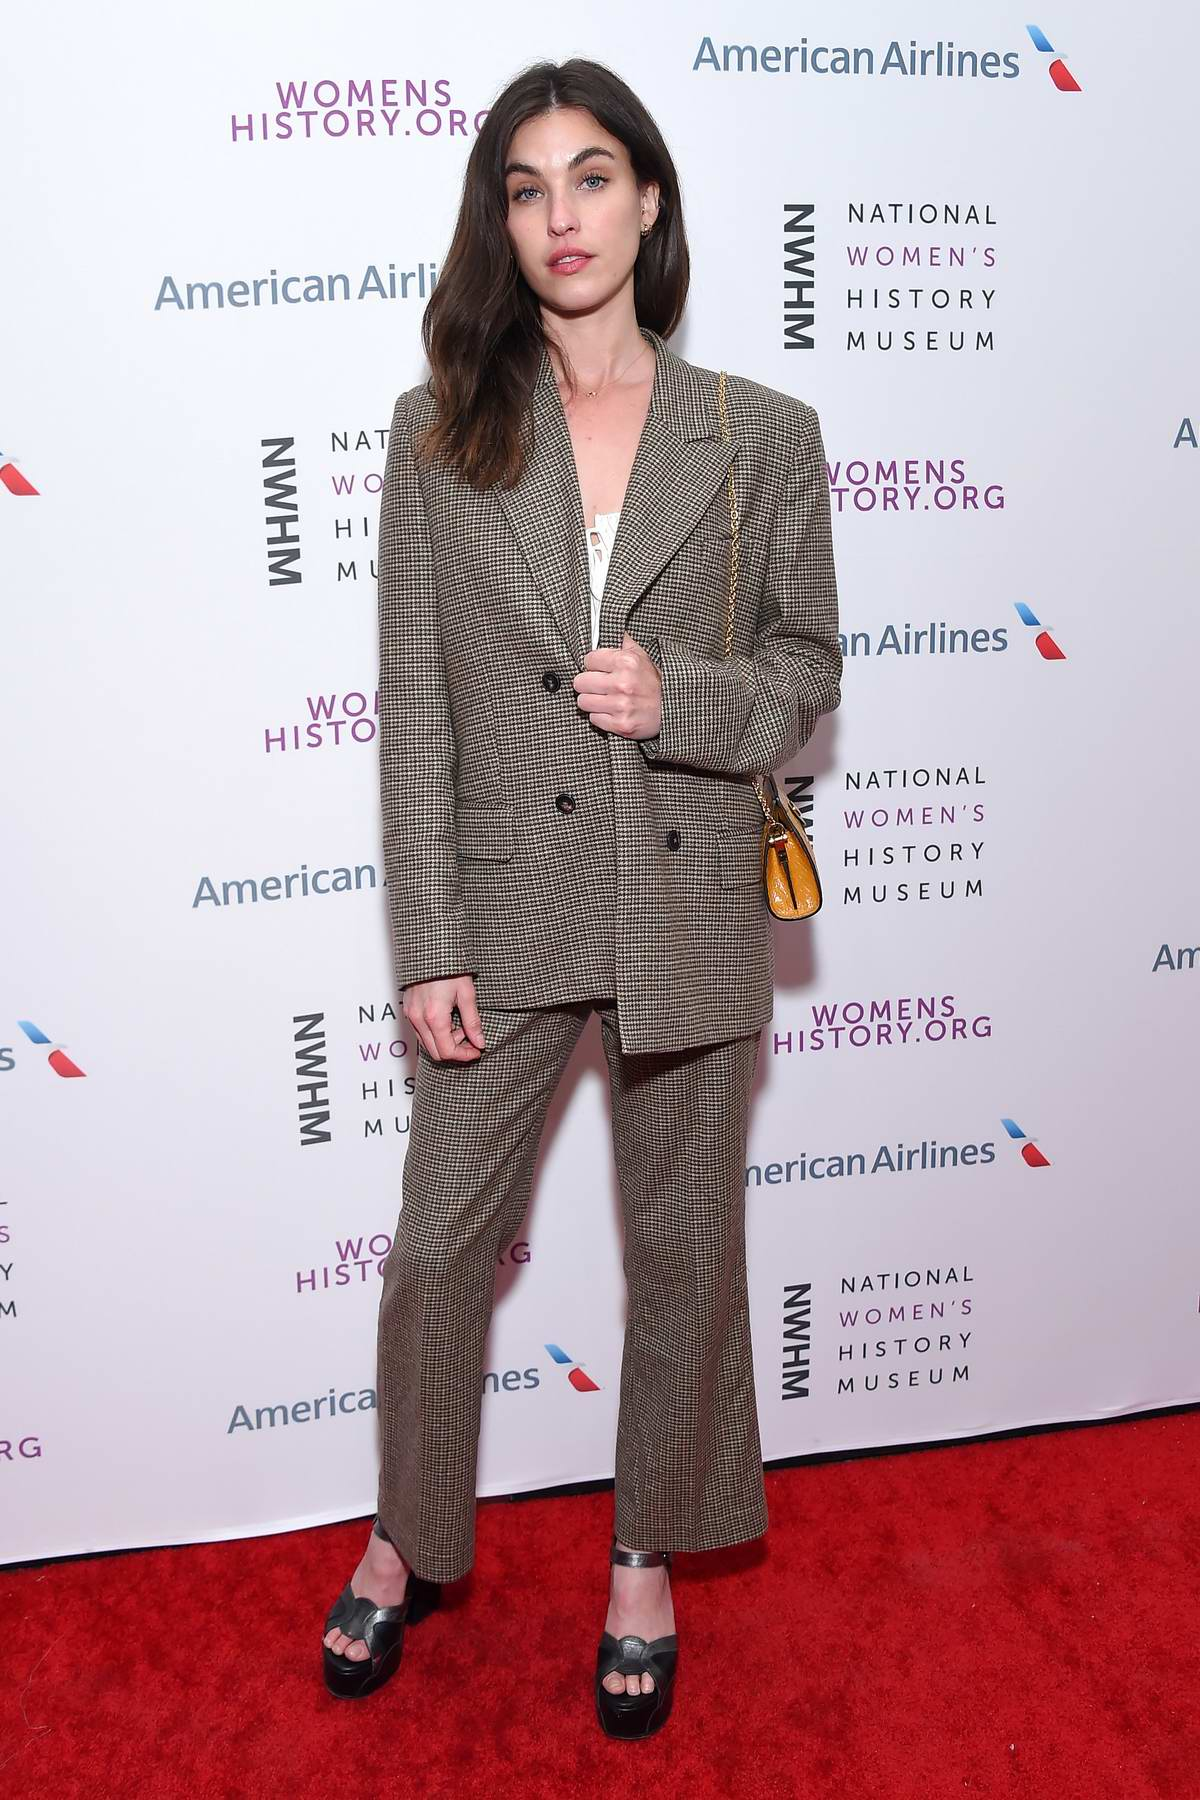 Rainey Qualley attends the National Women's History Museum's Women Making History Awards in Los Angeles